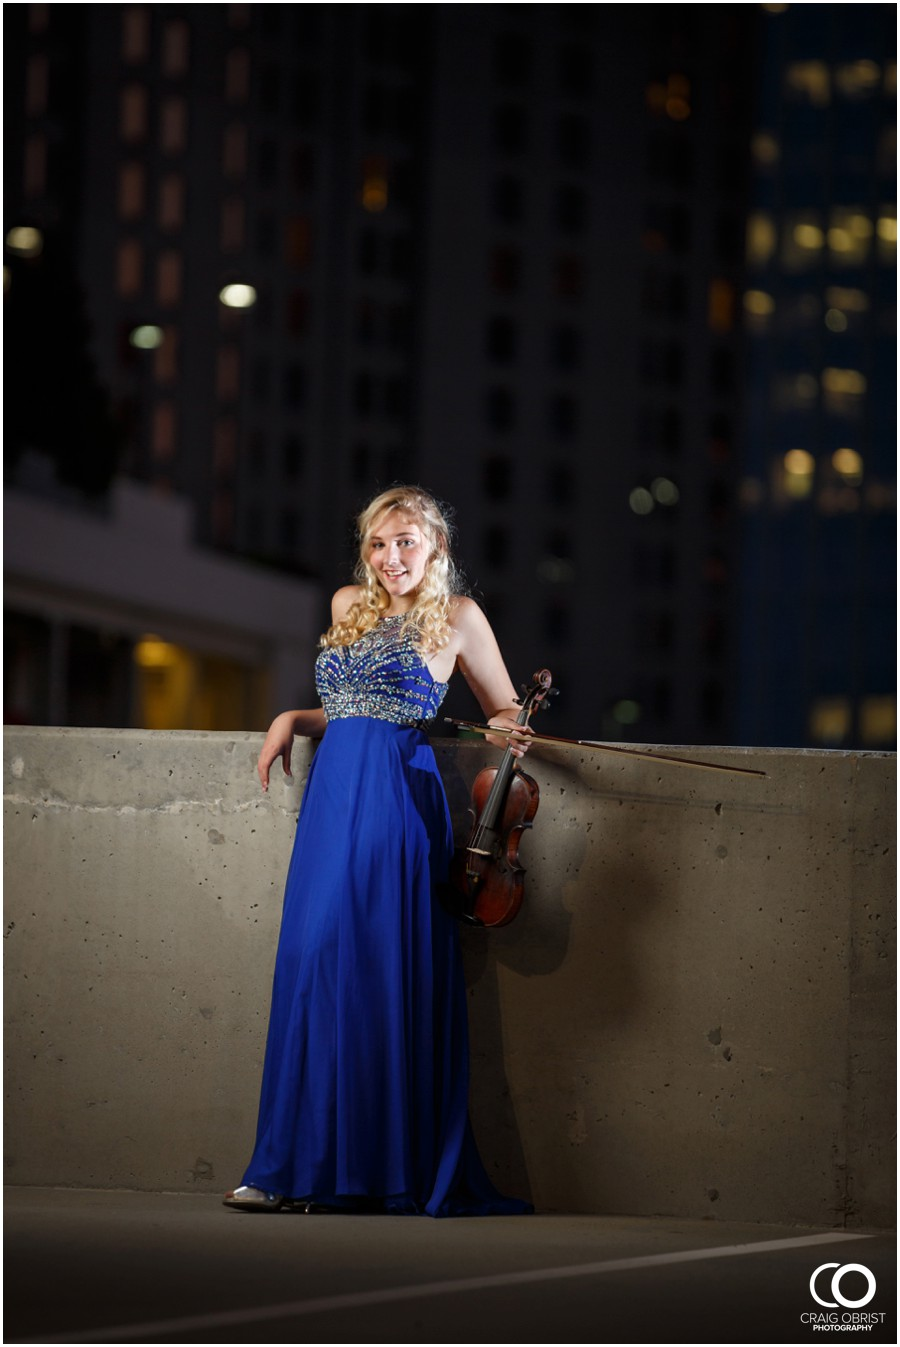 Buckhead Atlanta Senior Portraits Fashion wind_0019.jpg